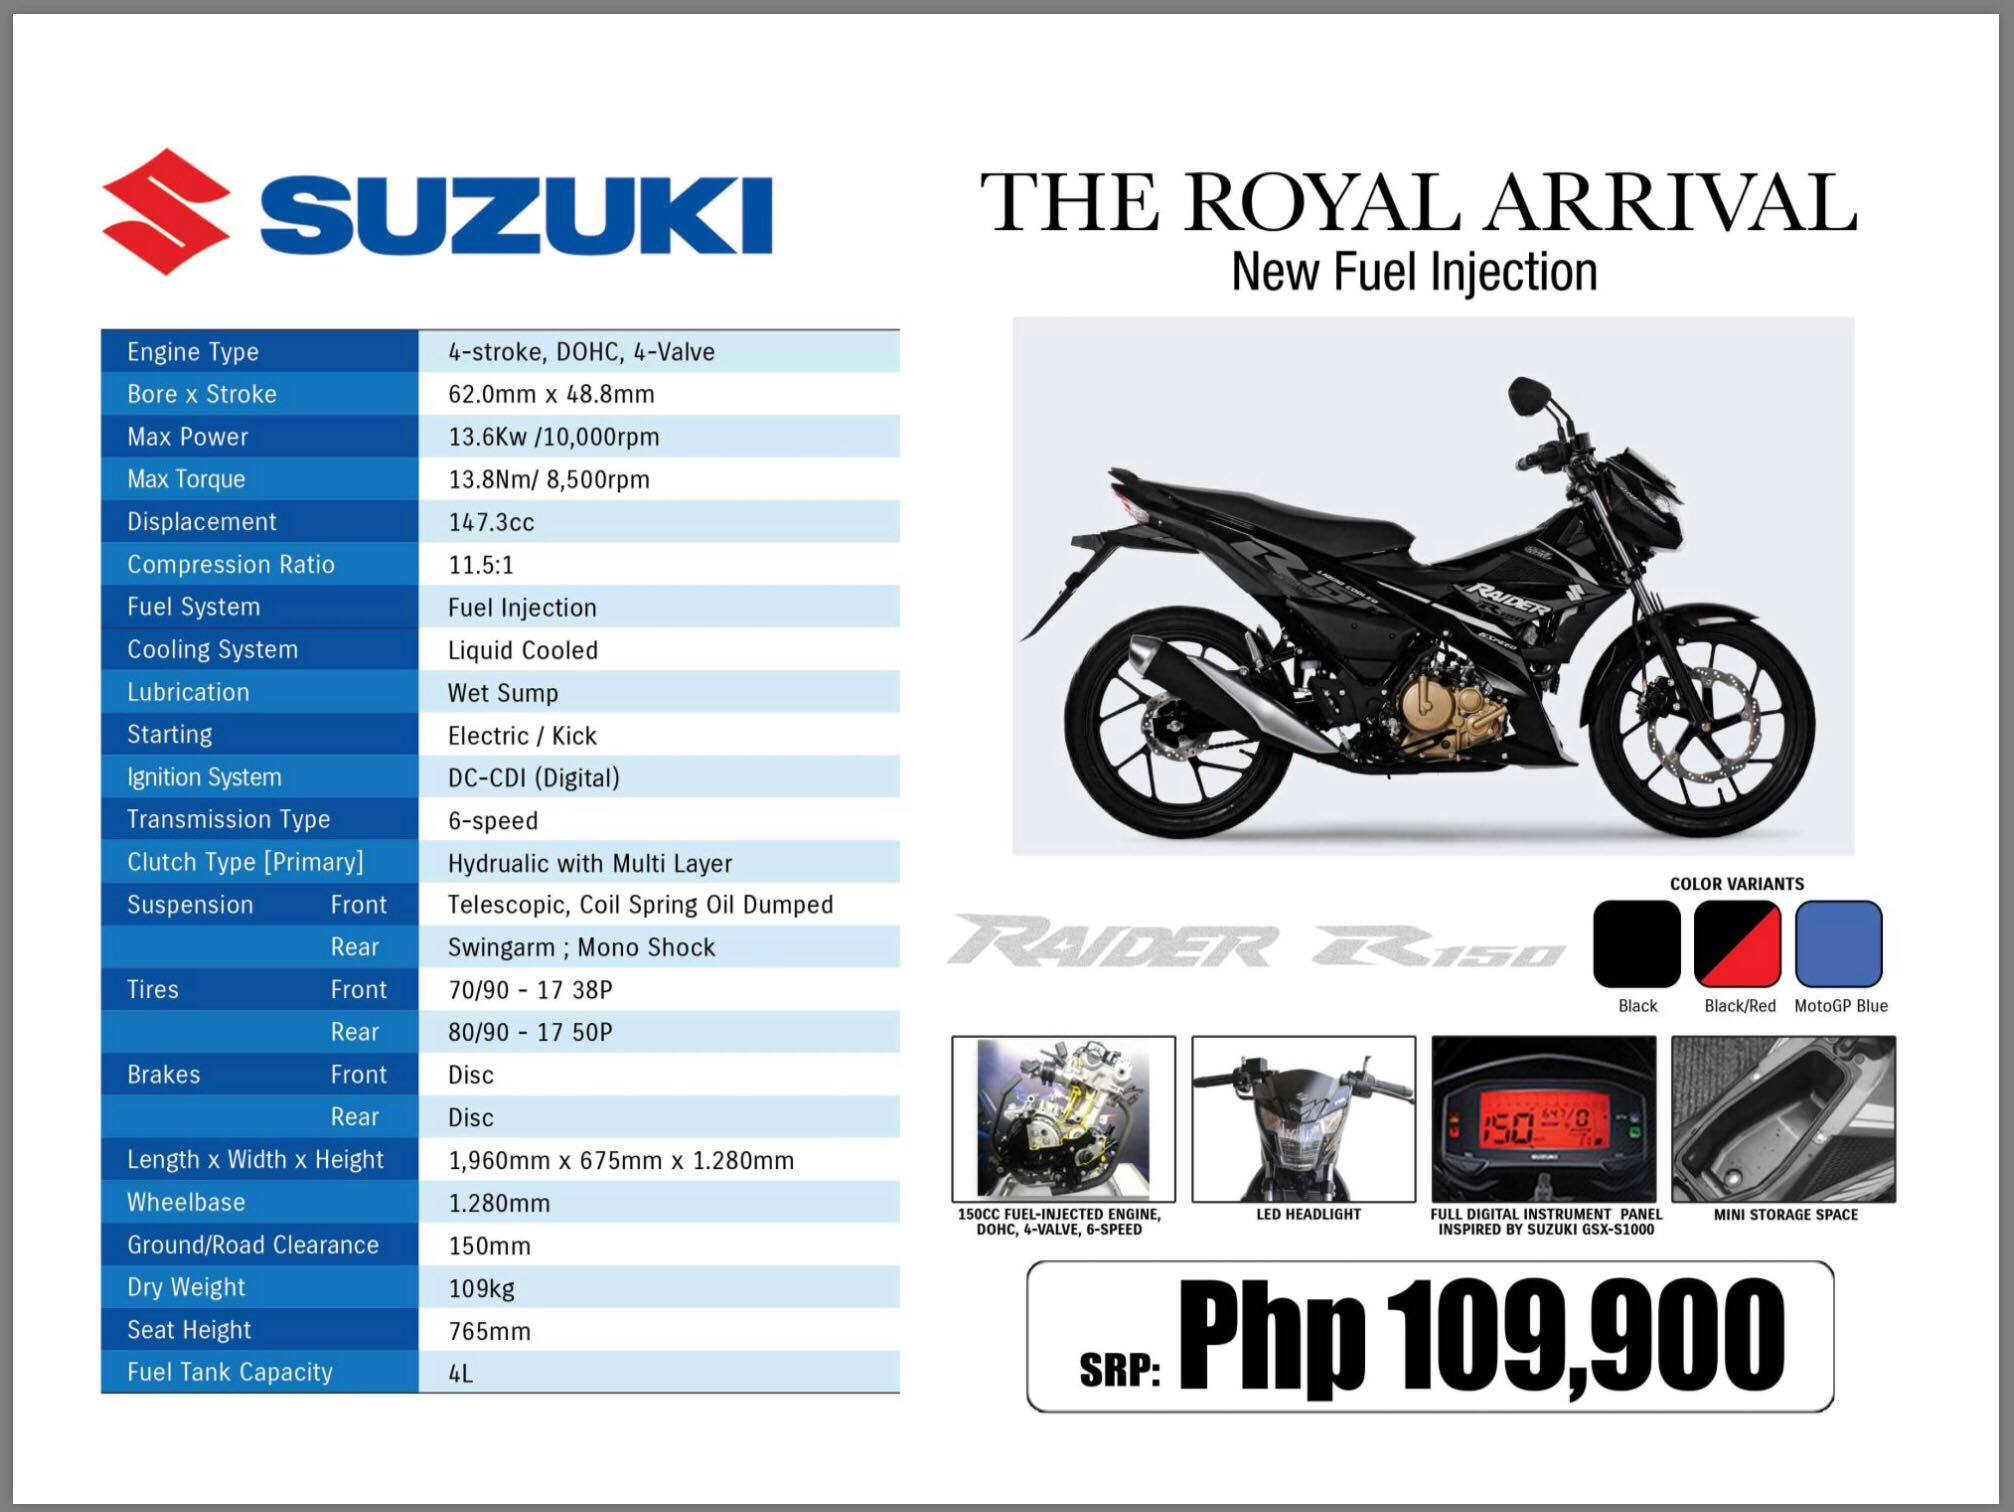 Suzuki Raider R150 fi – Full Specifications and Price – Motoph